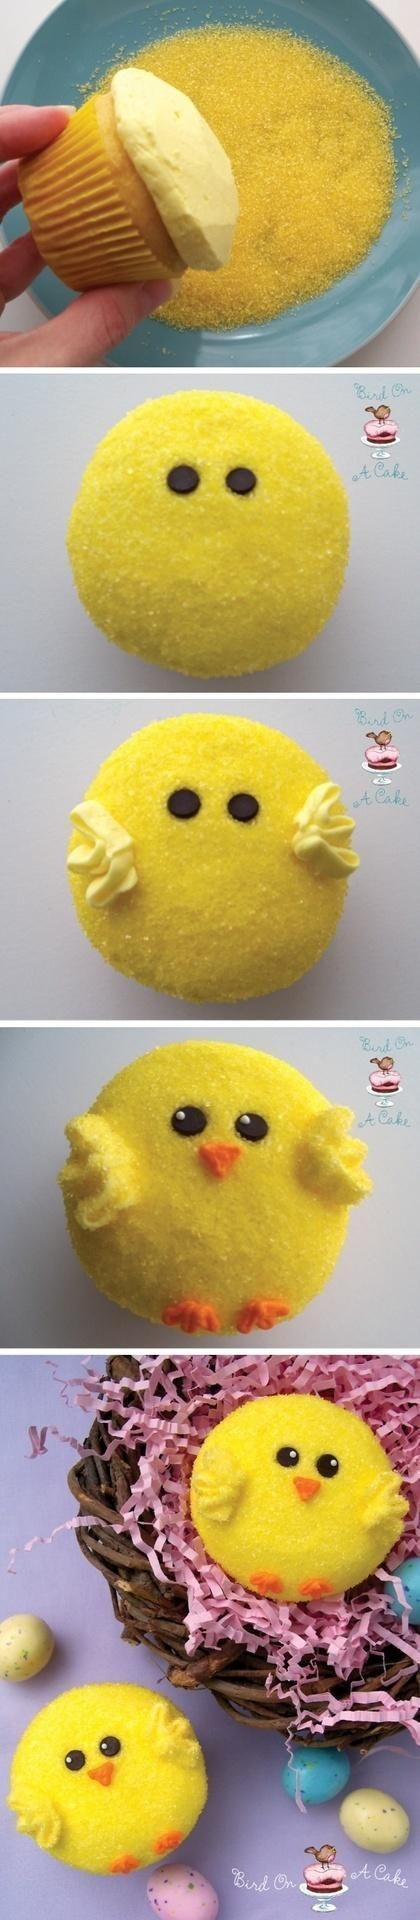 Cute DIY Easter ideas to help you celebrate on http://www.ddgdaily.com